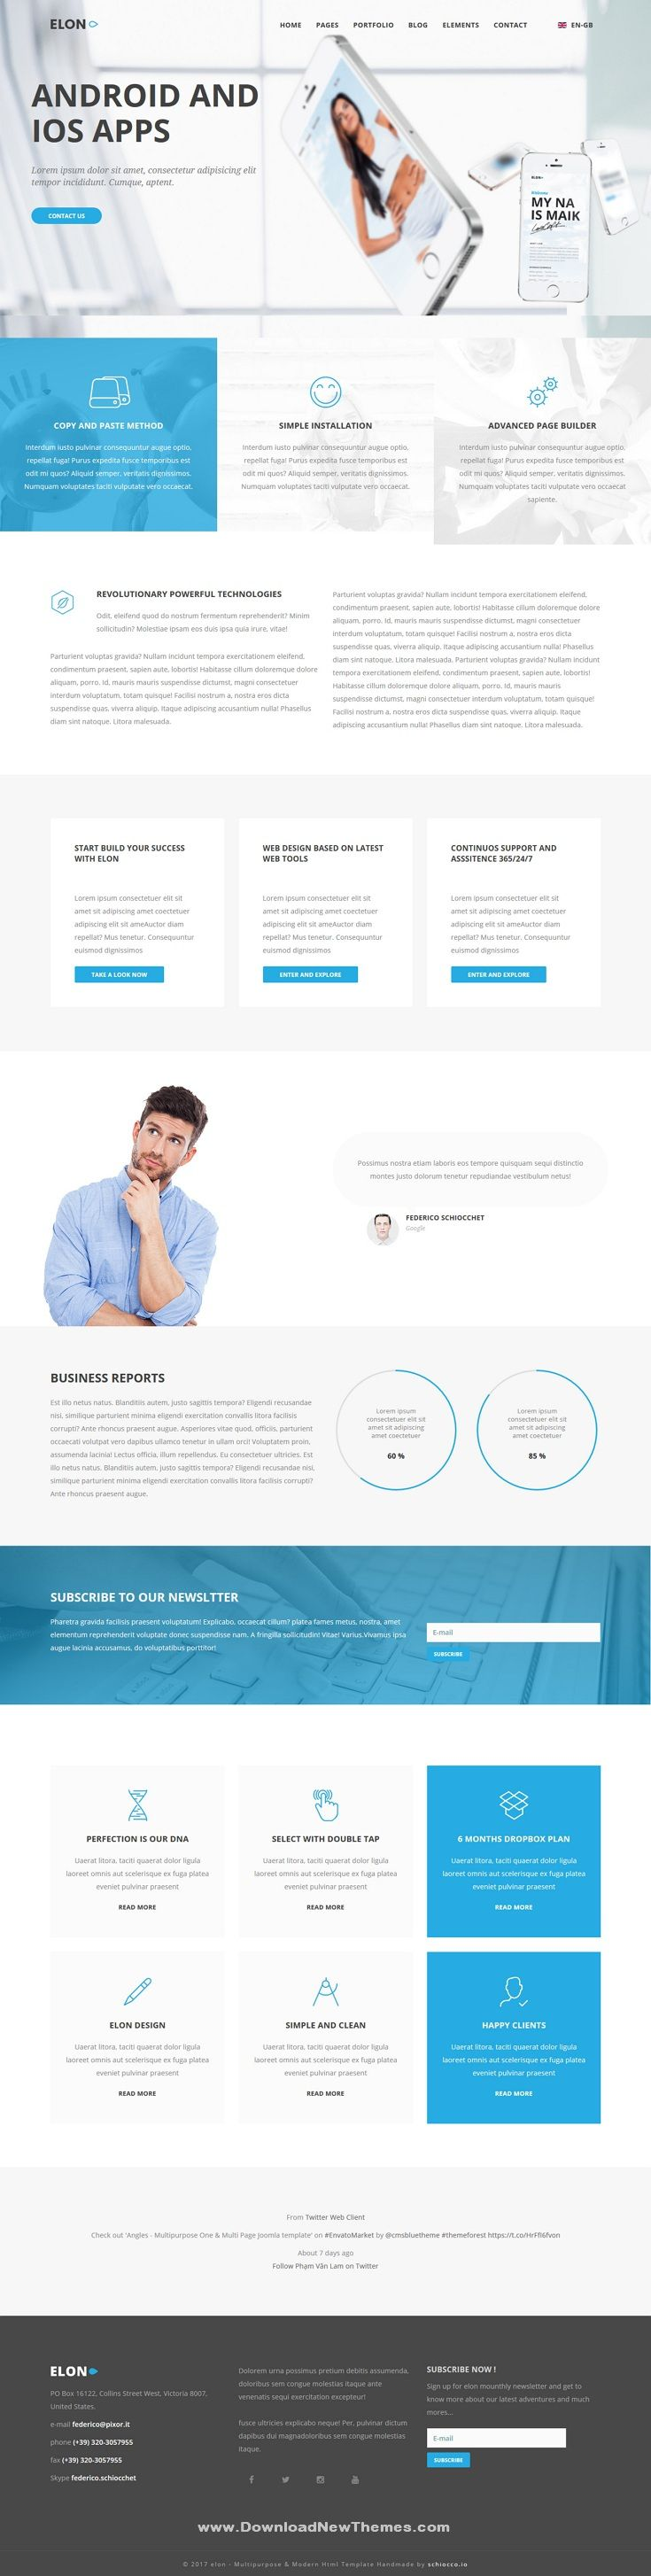 elon is a clean and modern design responsive joomla templates for